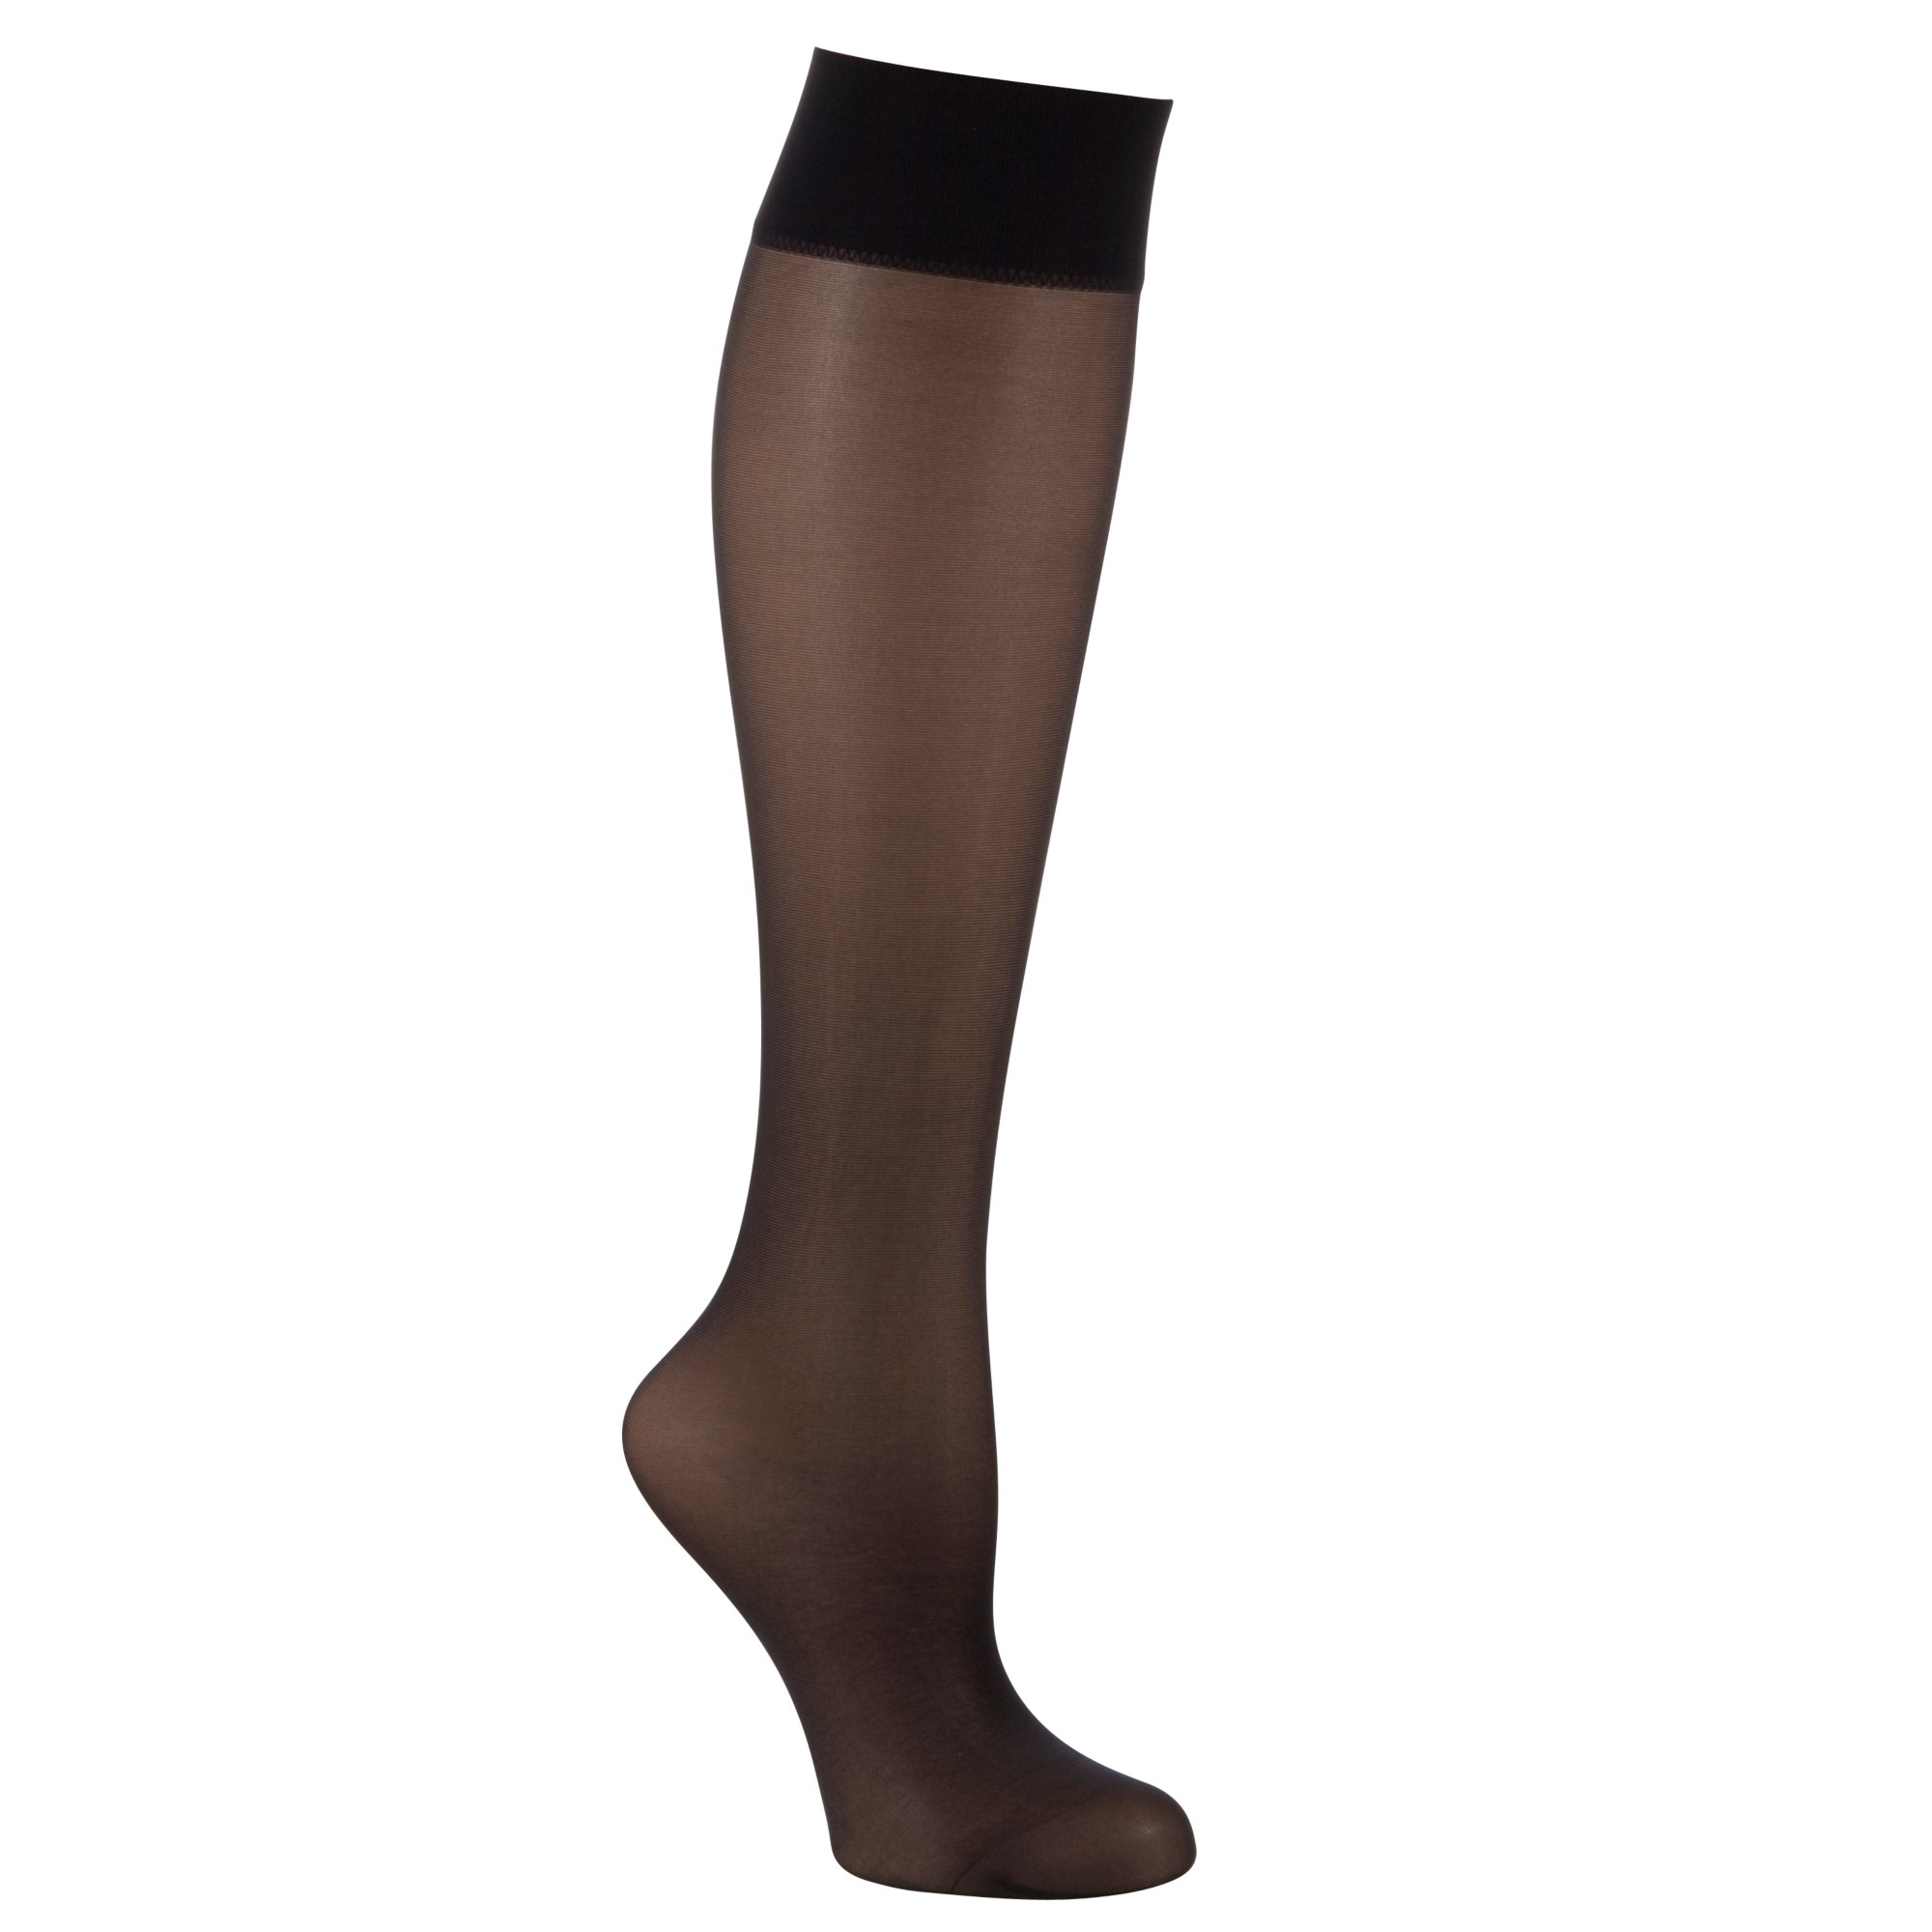 873693e5b Wolford Satin Touch 20 Denier Knee Highs in Black - Lyst